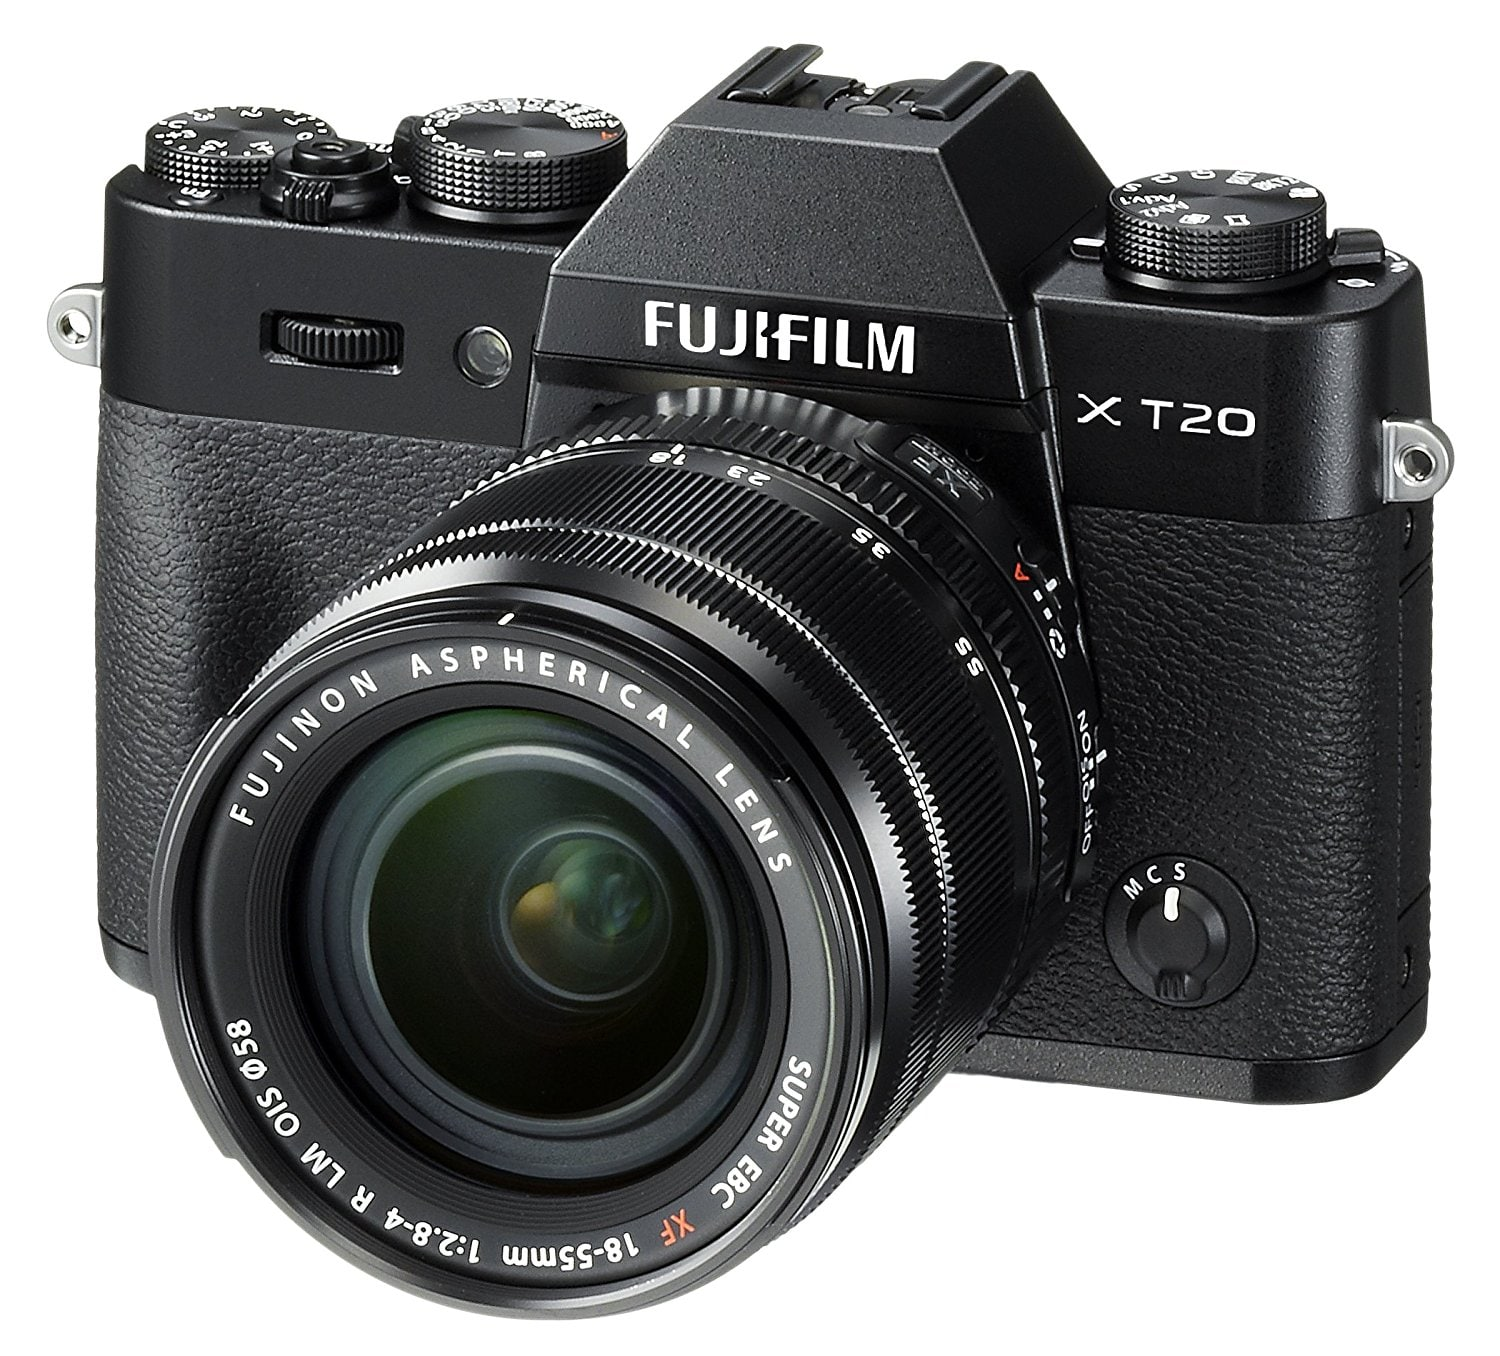 Fujifilm X-T20 Mirrorless Digital Camera w/XF18-55mmF2.8-4.0 R LM OIS Lens $1099